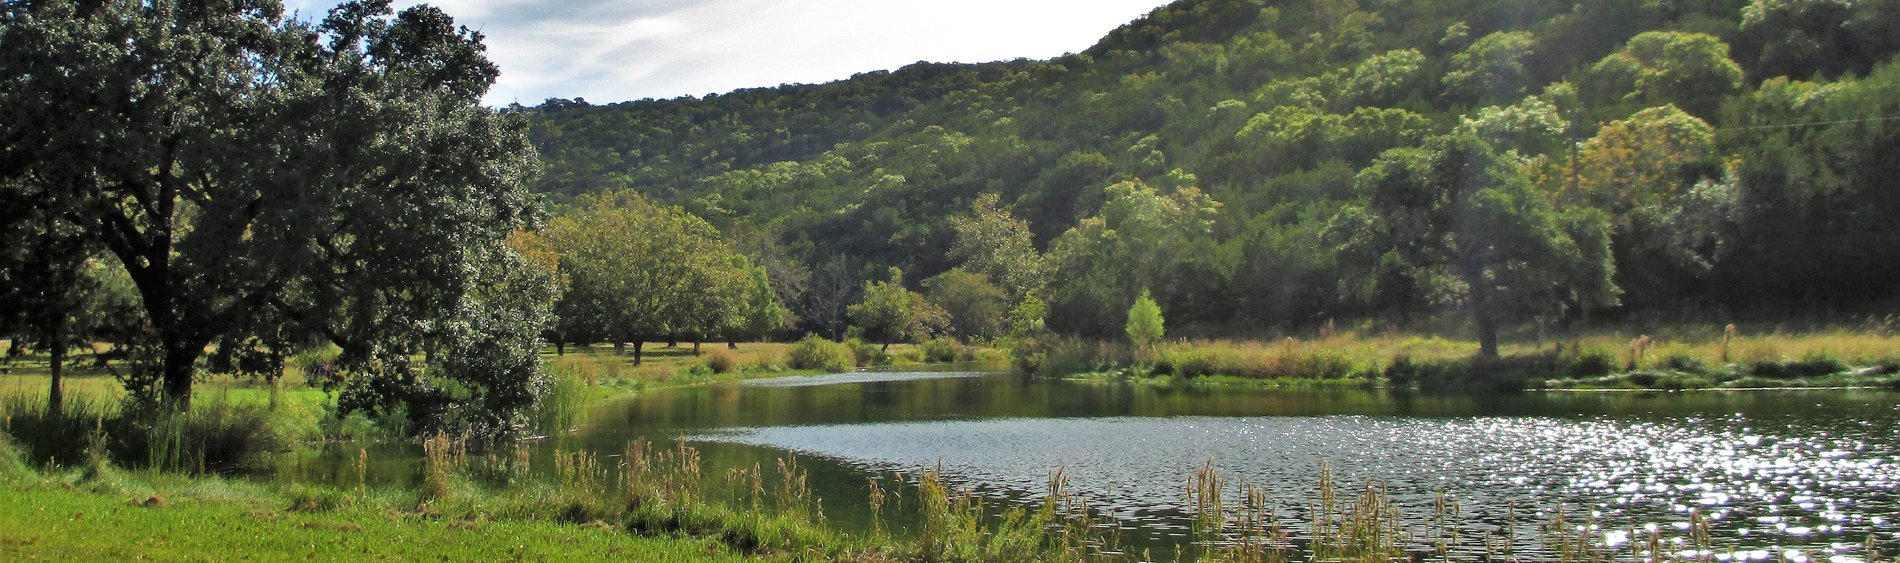 pond in the hills